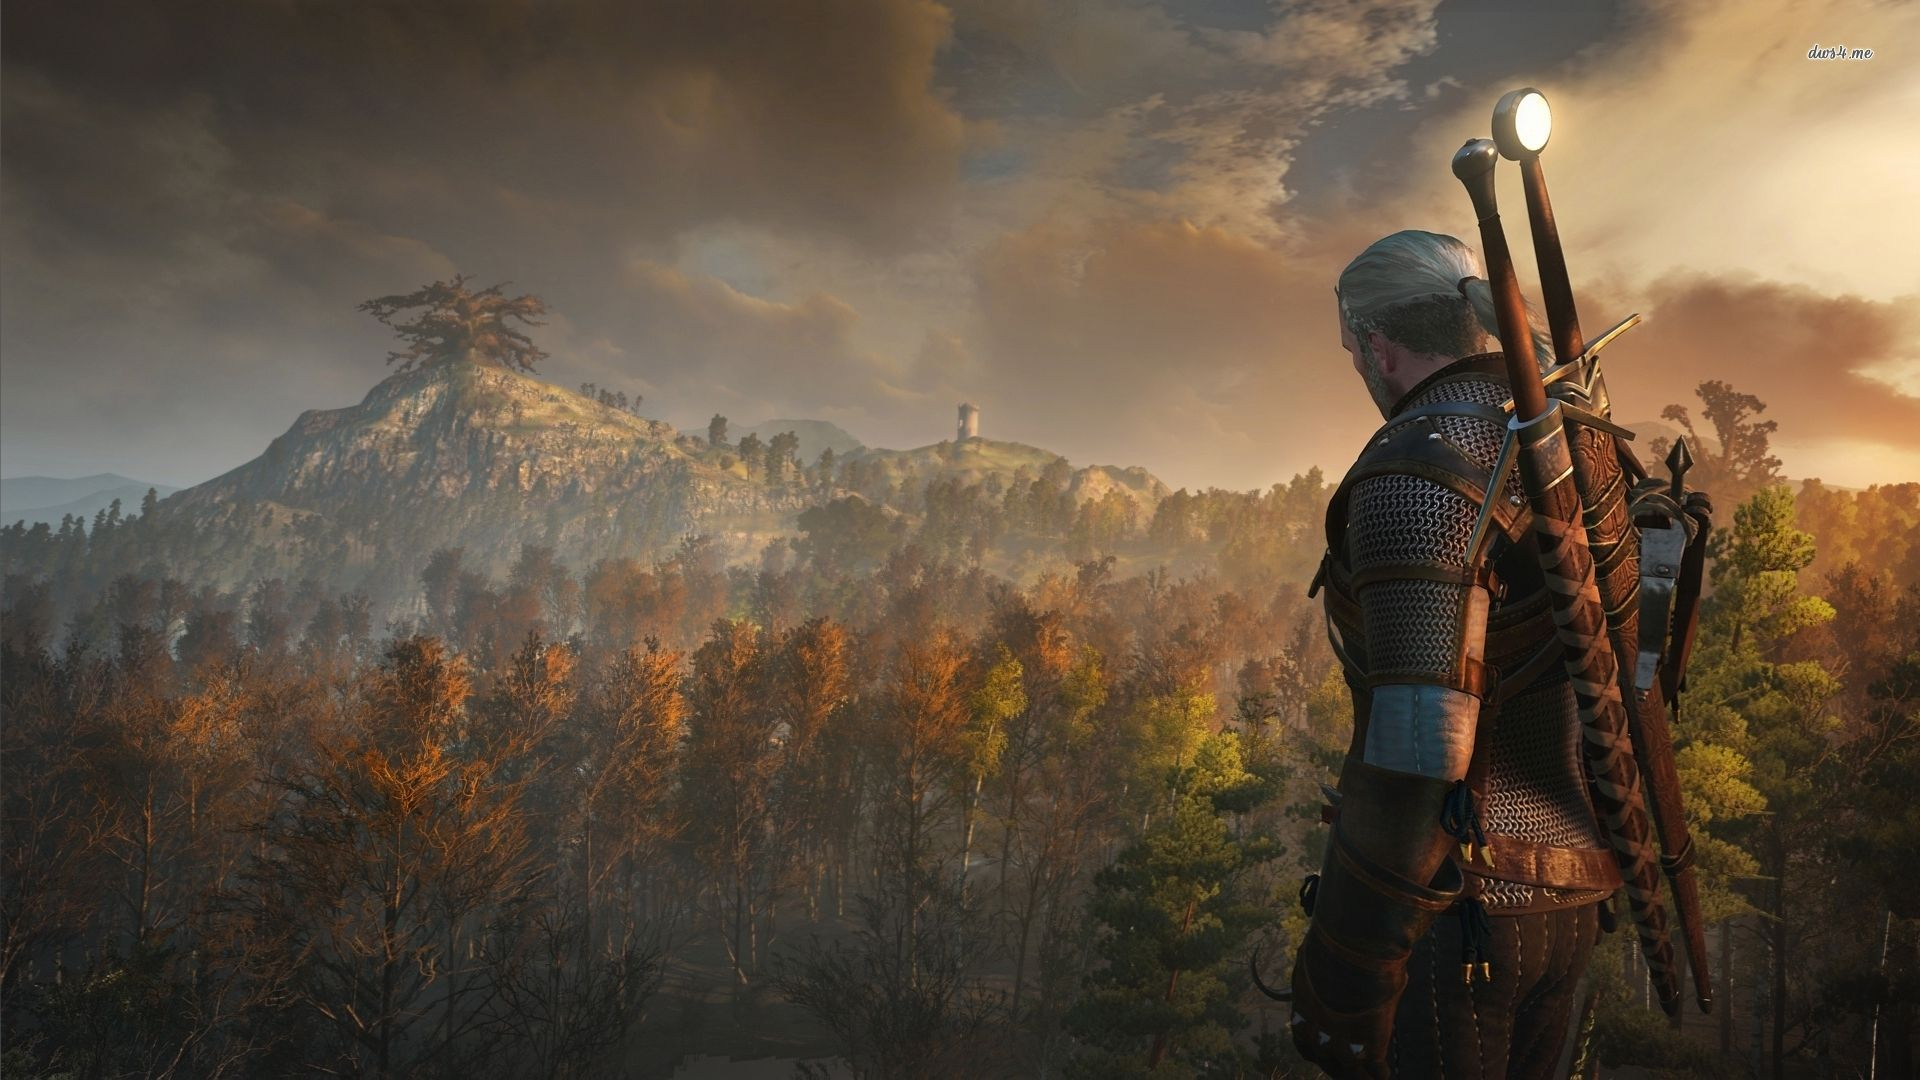 Witcher 3 Desktop Wallpapers Top Free Witcher 3 Desktop